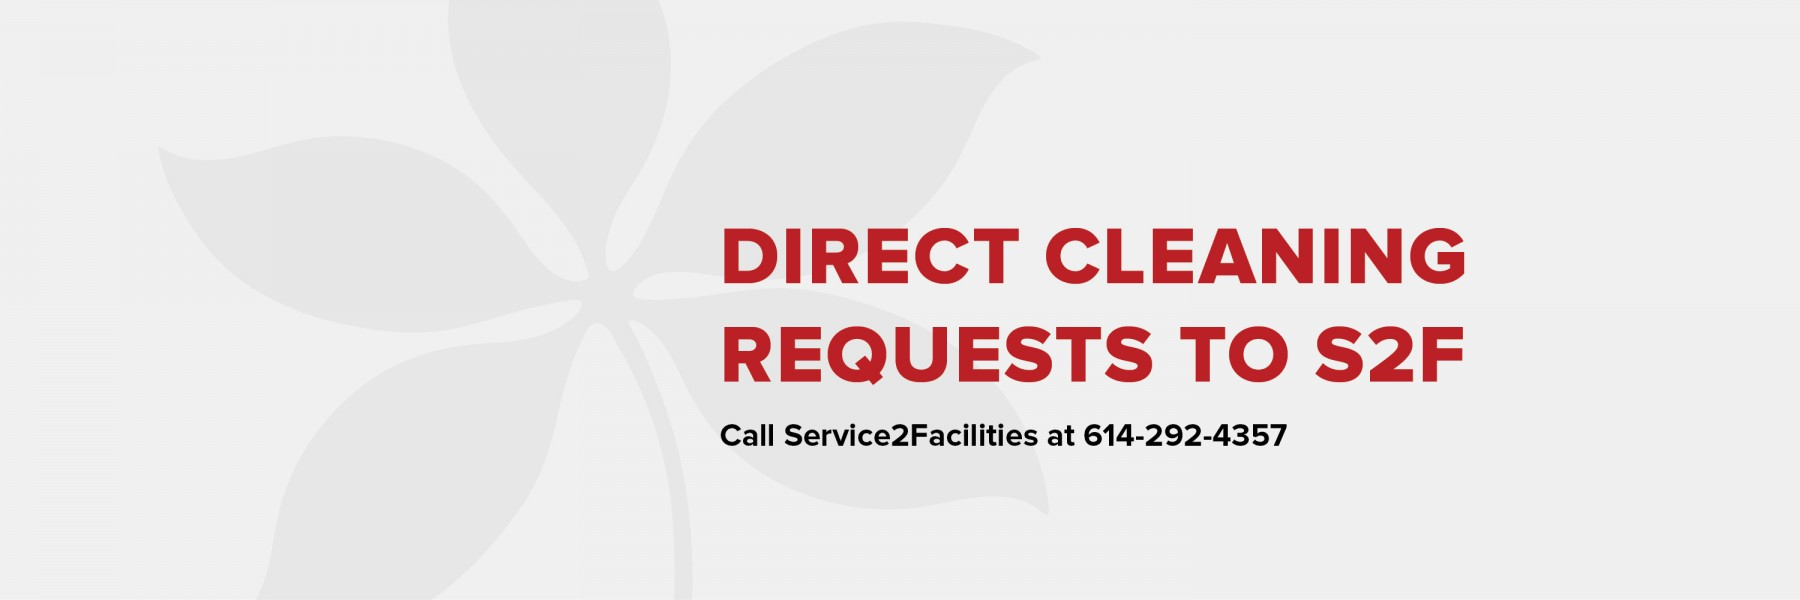 Direct cleaning requests to Service2Facilities at 614-292-HELP